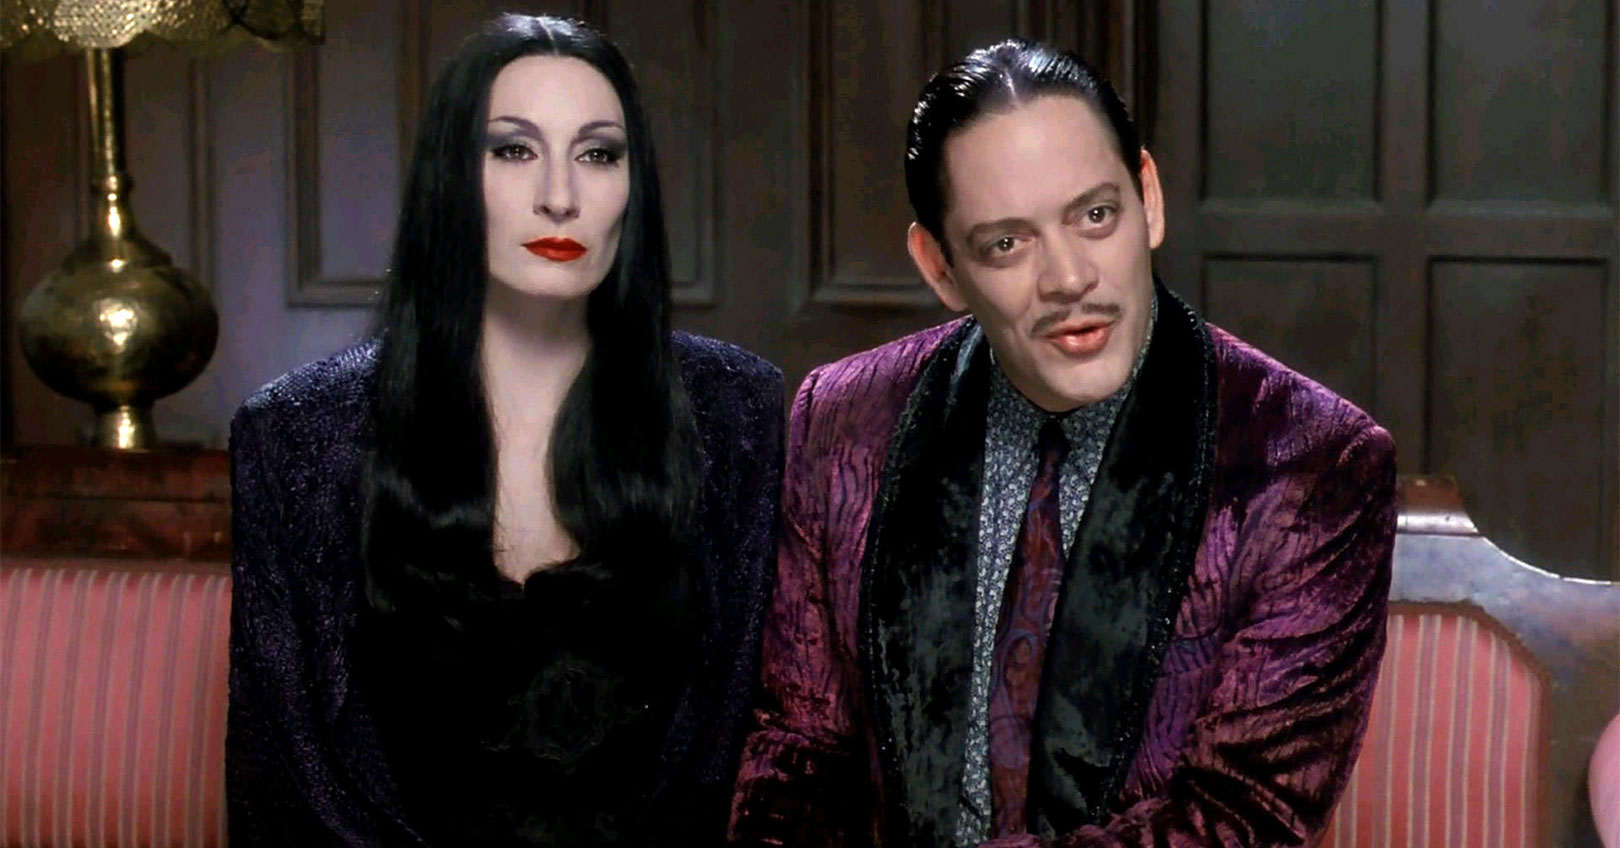 The Addams Family - Anjelica Huston and Raul Julia